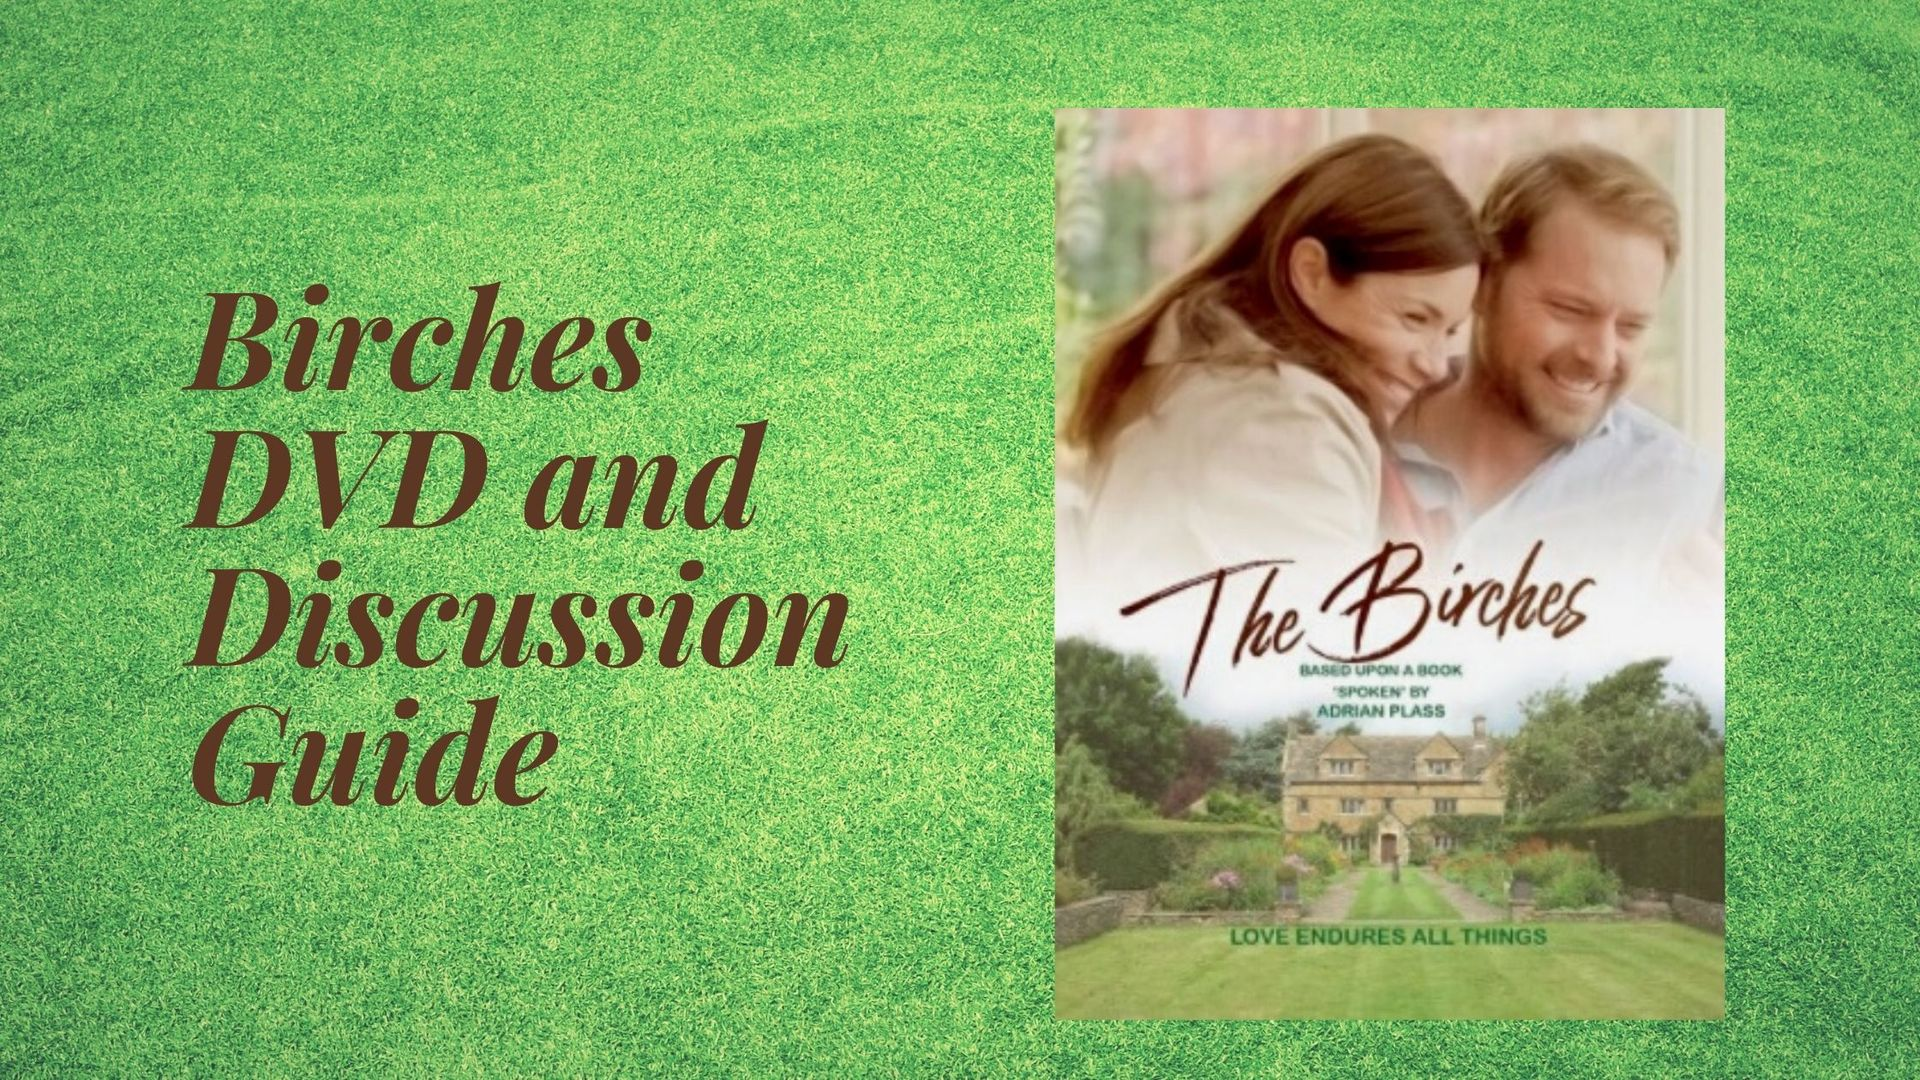 Birches DVD and Discussion Guide